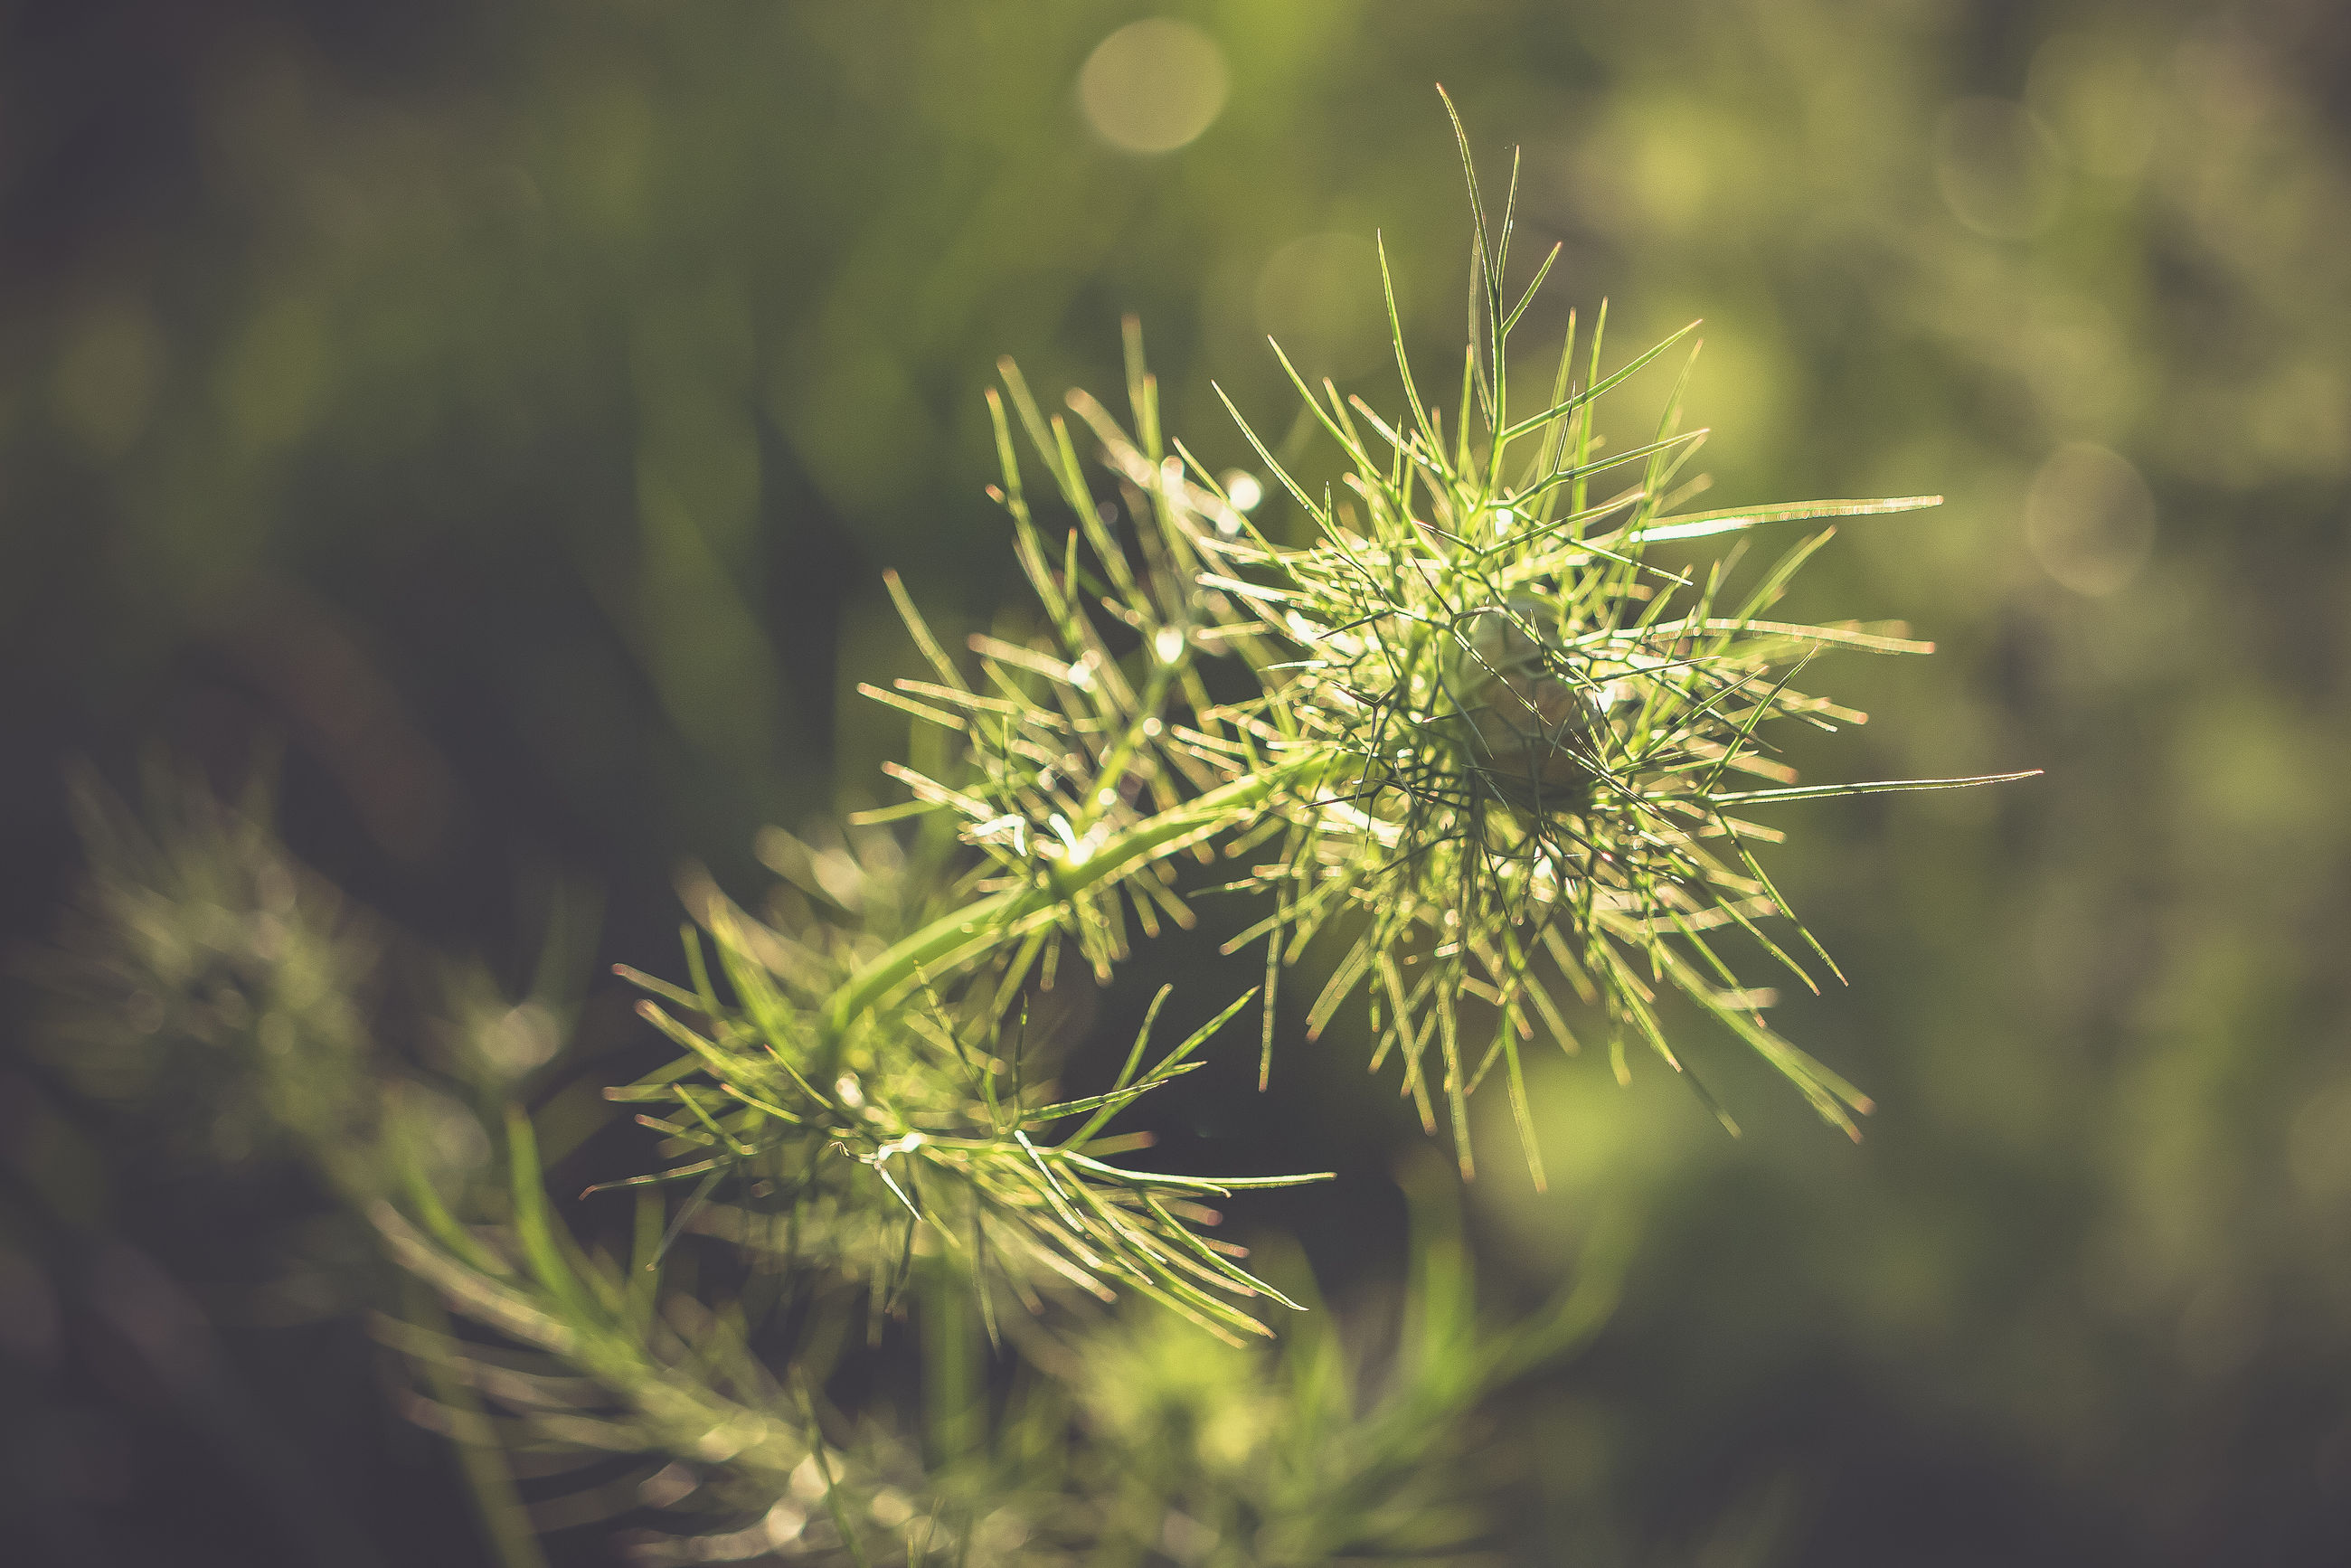 nature, plant, green, grass, branch, beauty in nature, macro photography, leaf, tree, flower, close-up, no people, focus on foreground, sunlight, growth, pinaceae, coniferous tree, outdoors, freshness, day, pine tree, flowering plant, environment, plant stem, land, tranquility, fragility, selective focus, plant part, thorns, spines, and prickles, social issues